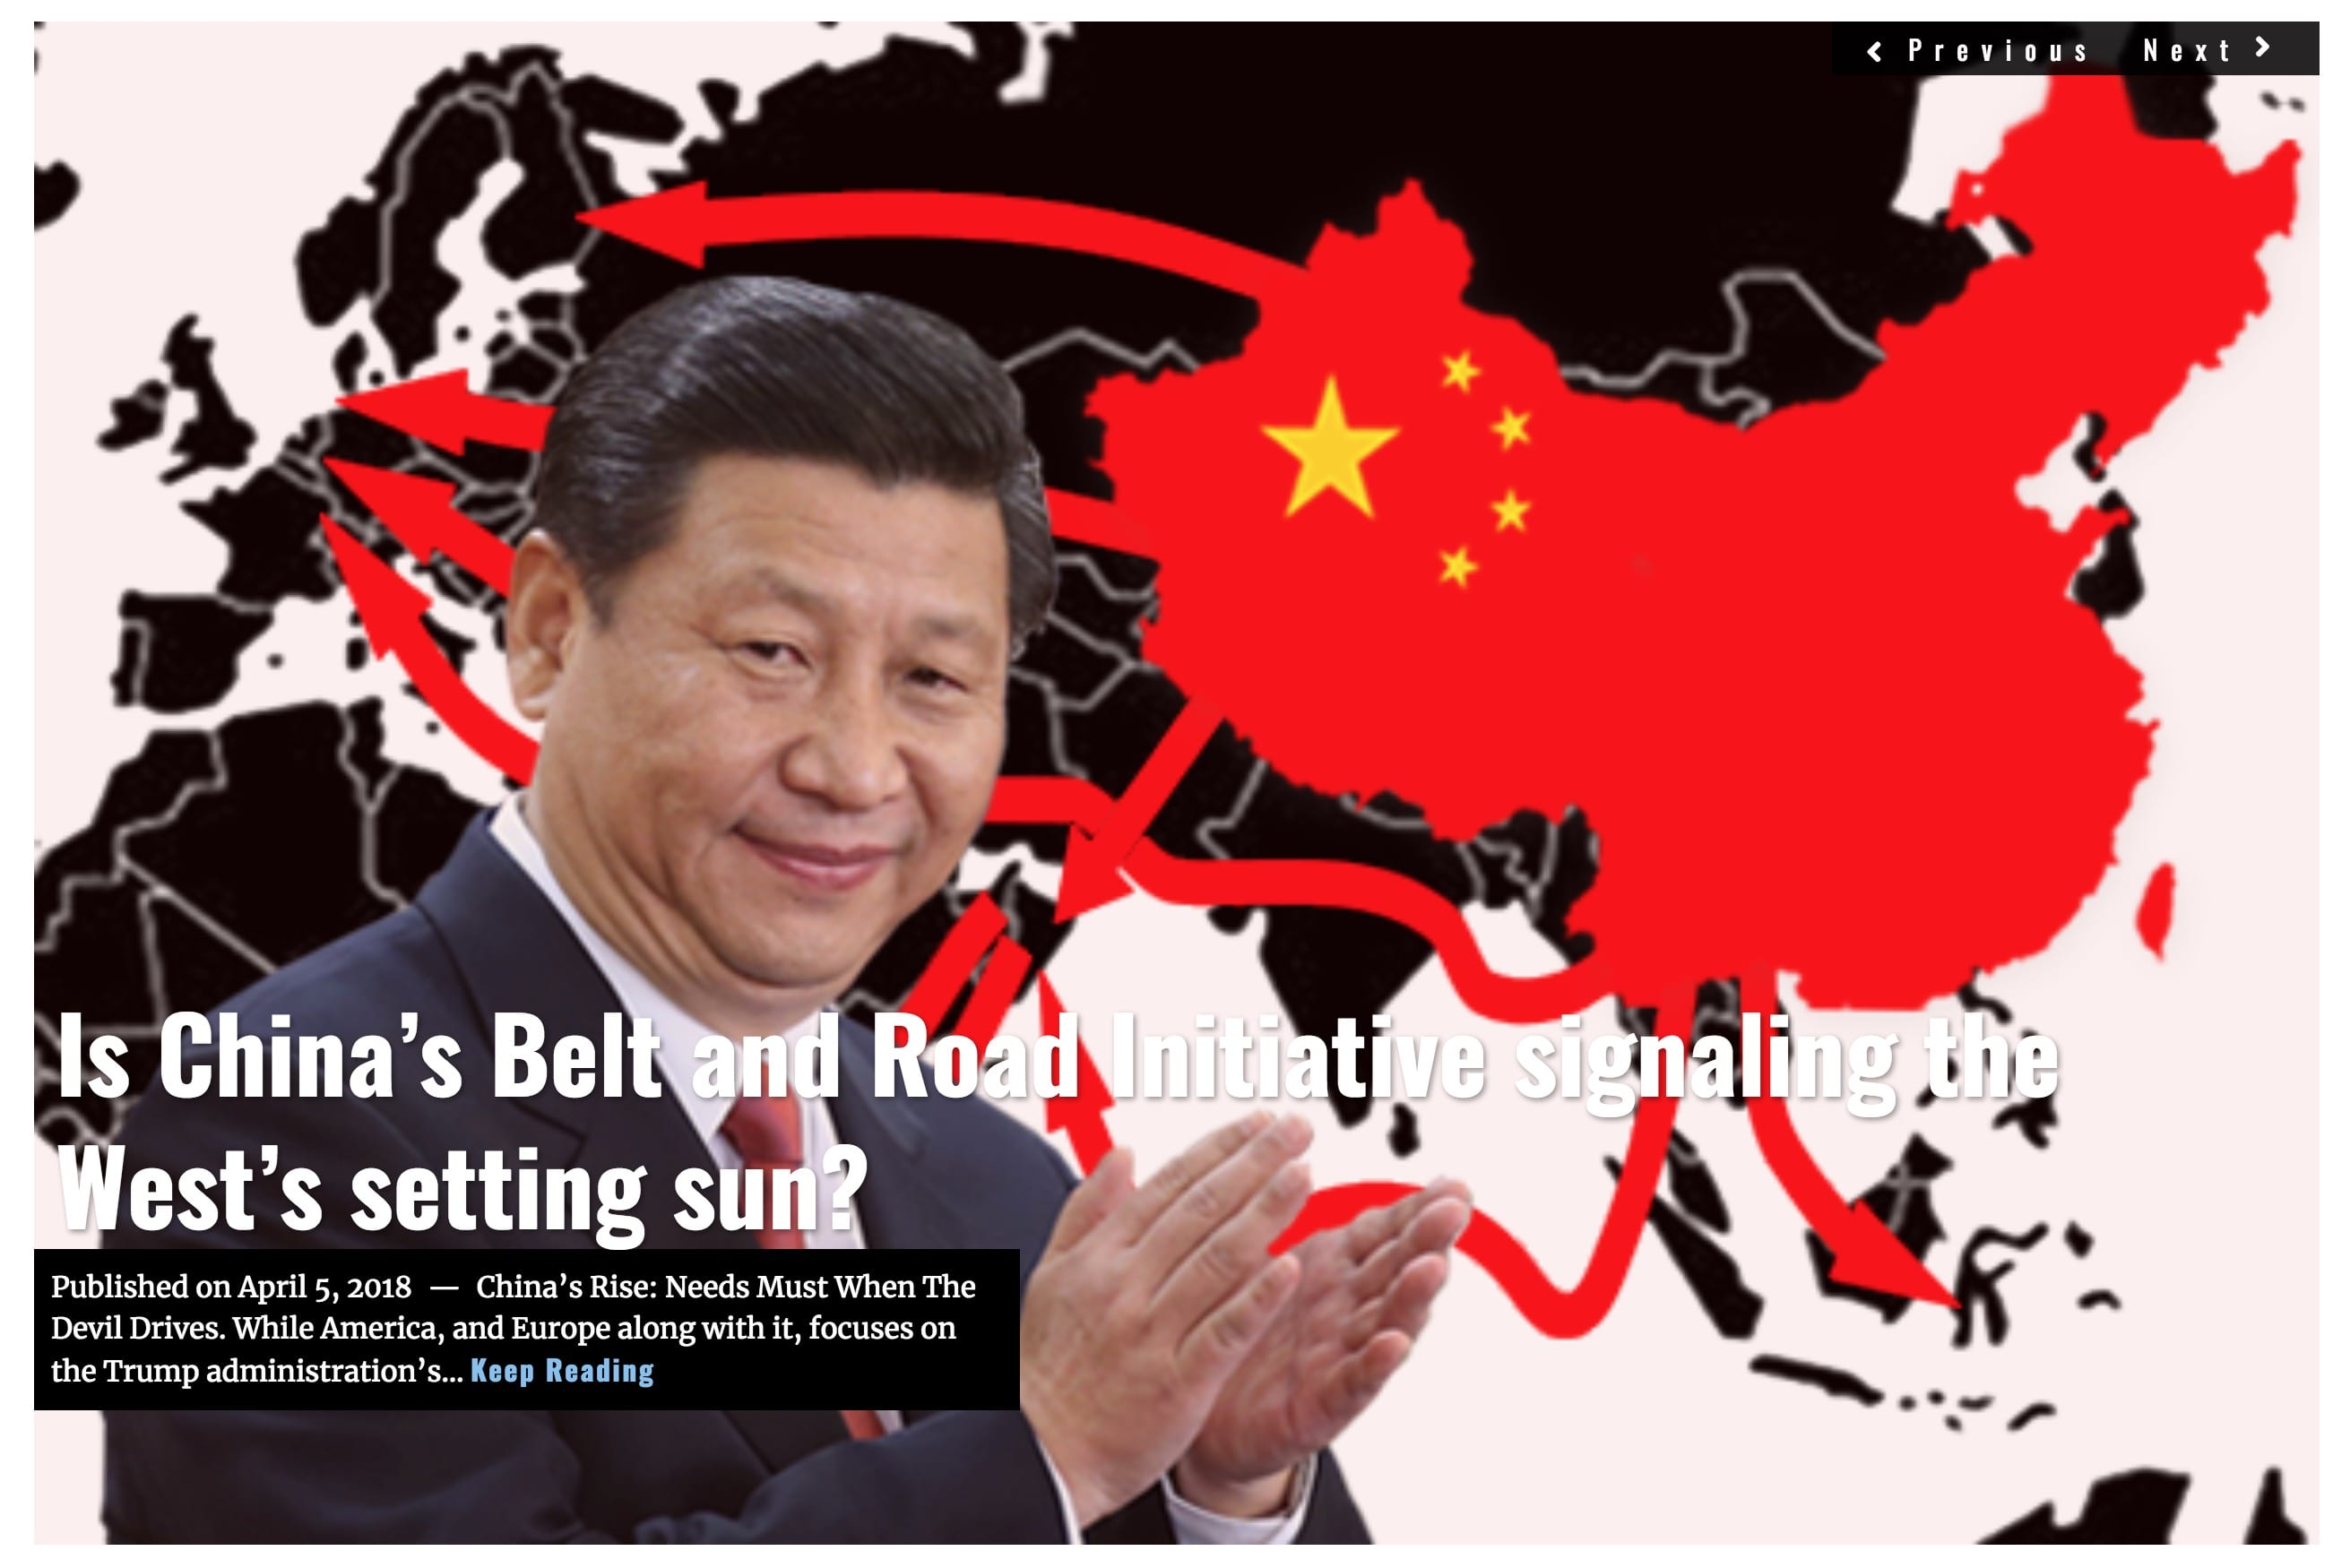 Image Lima Charlie News Headline China Belt and Road APRIL 2018